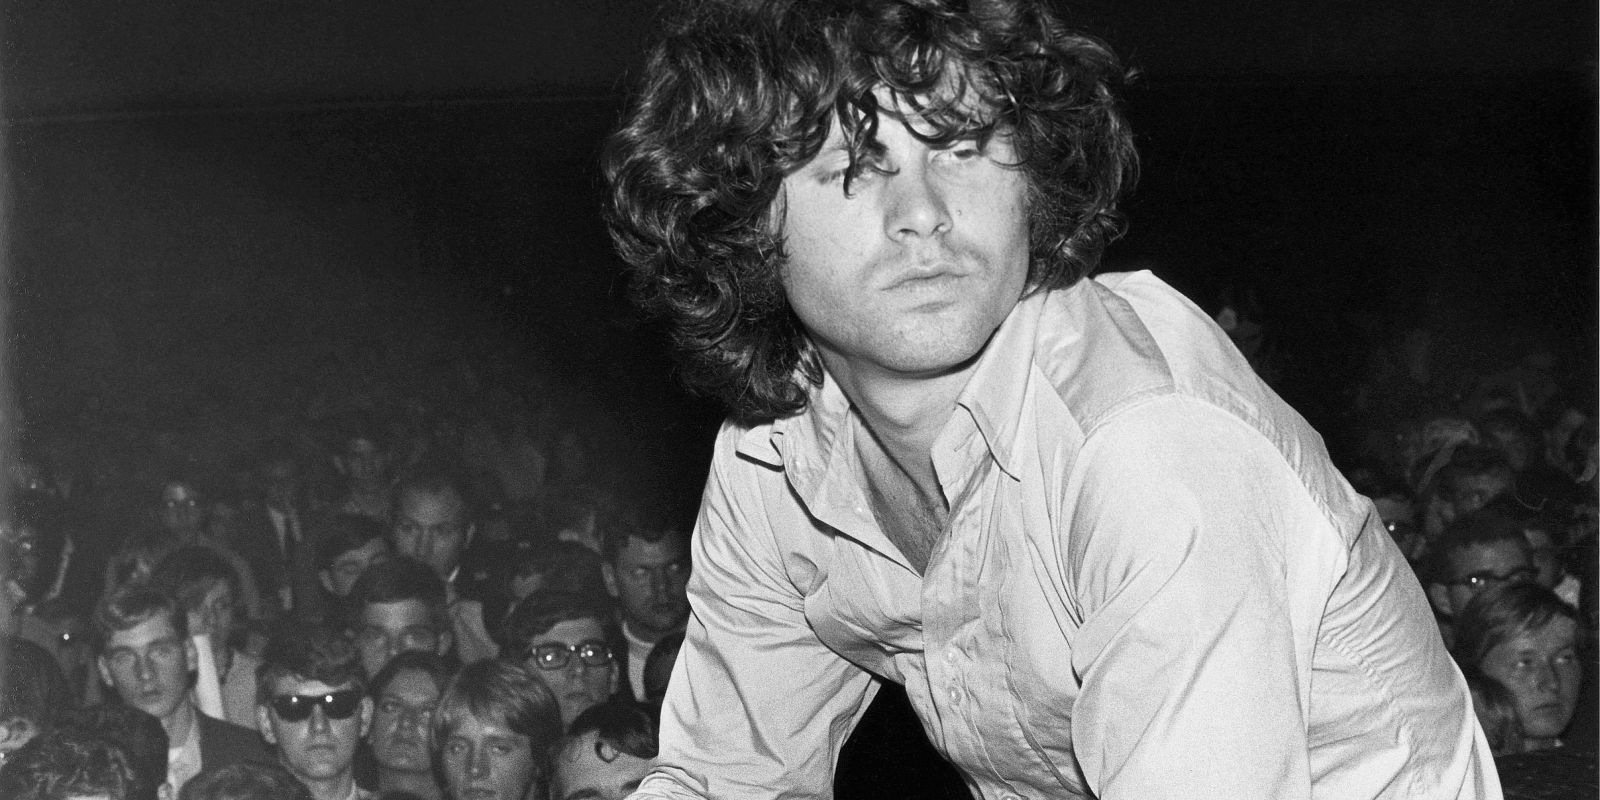 July 3, 1971 – Jim Morrison Found Dead In Bathtub